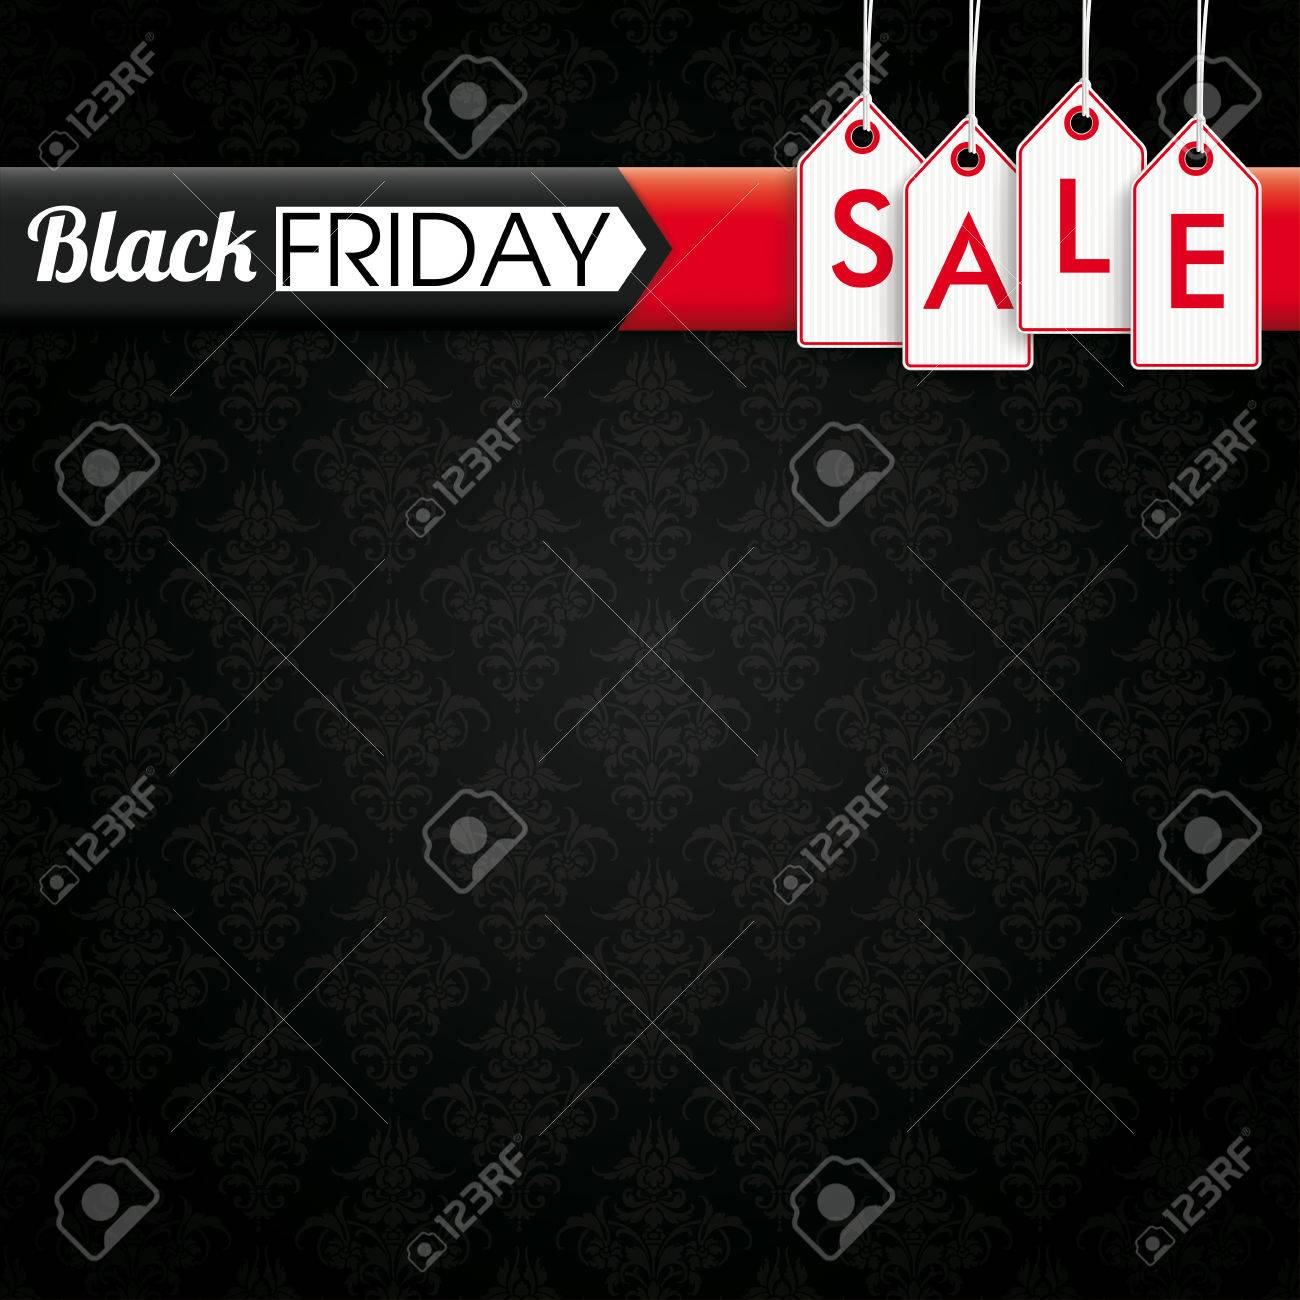 Black Friday banner with price stickers on the black background with ornaments. vector file. - 64203183